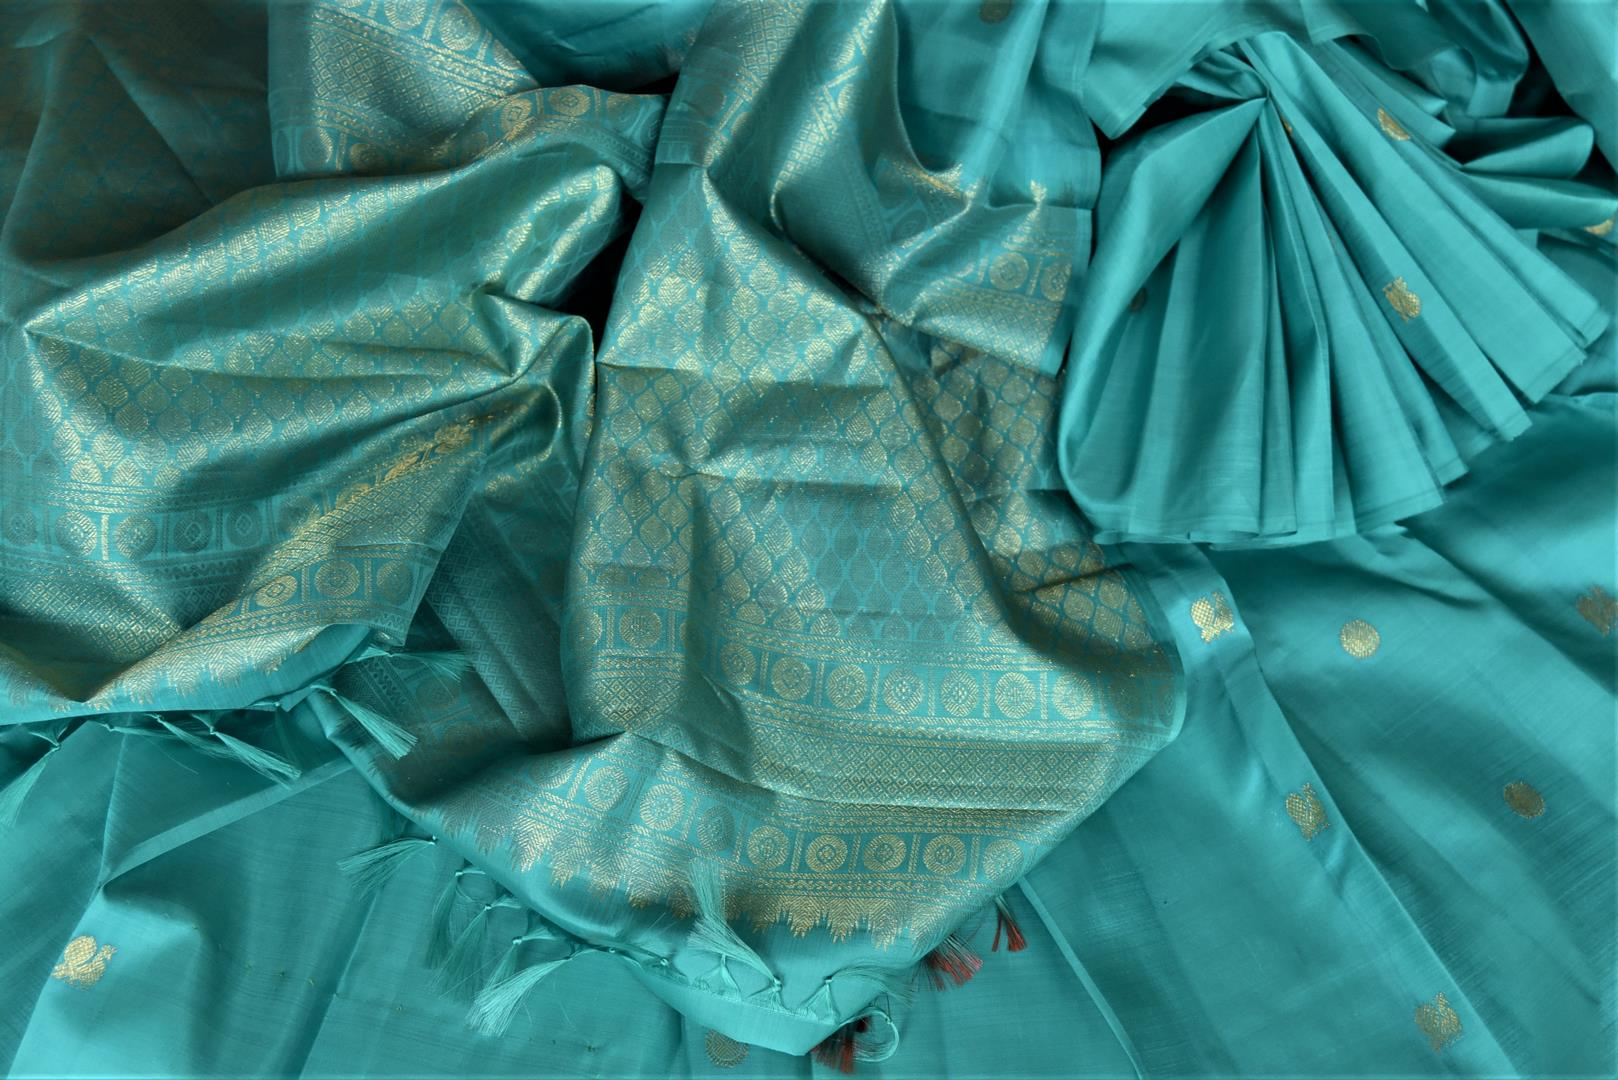 Shop lovely blue borderless Kanjivaram saree online in USA with small peacock and floral zari buta. Give yourself a beautiful traditional makeover this wedding season with exquisite Kanchipuram silk sarees from Pure Elegance Indian fashion boutique in USA.-details